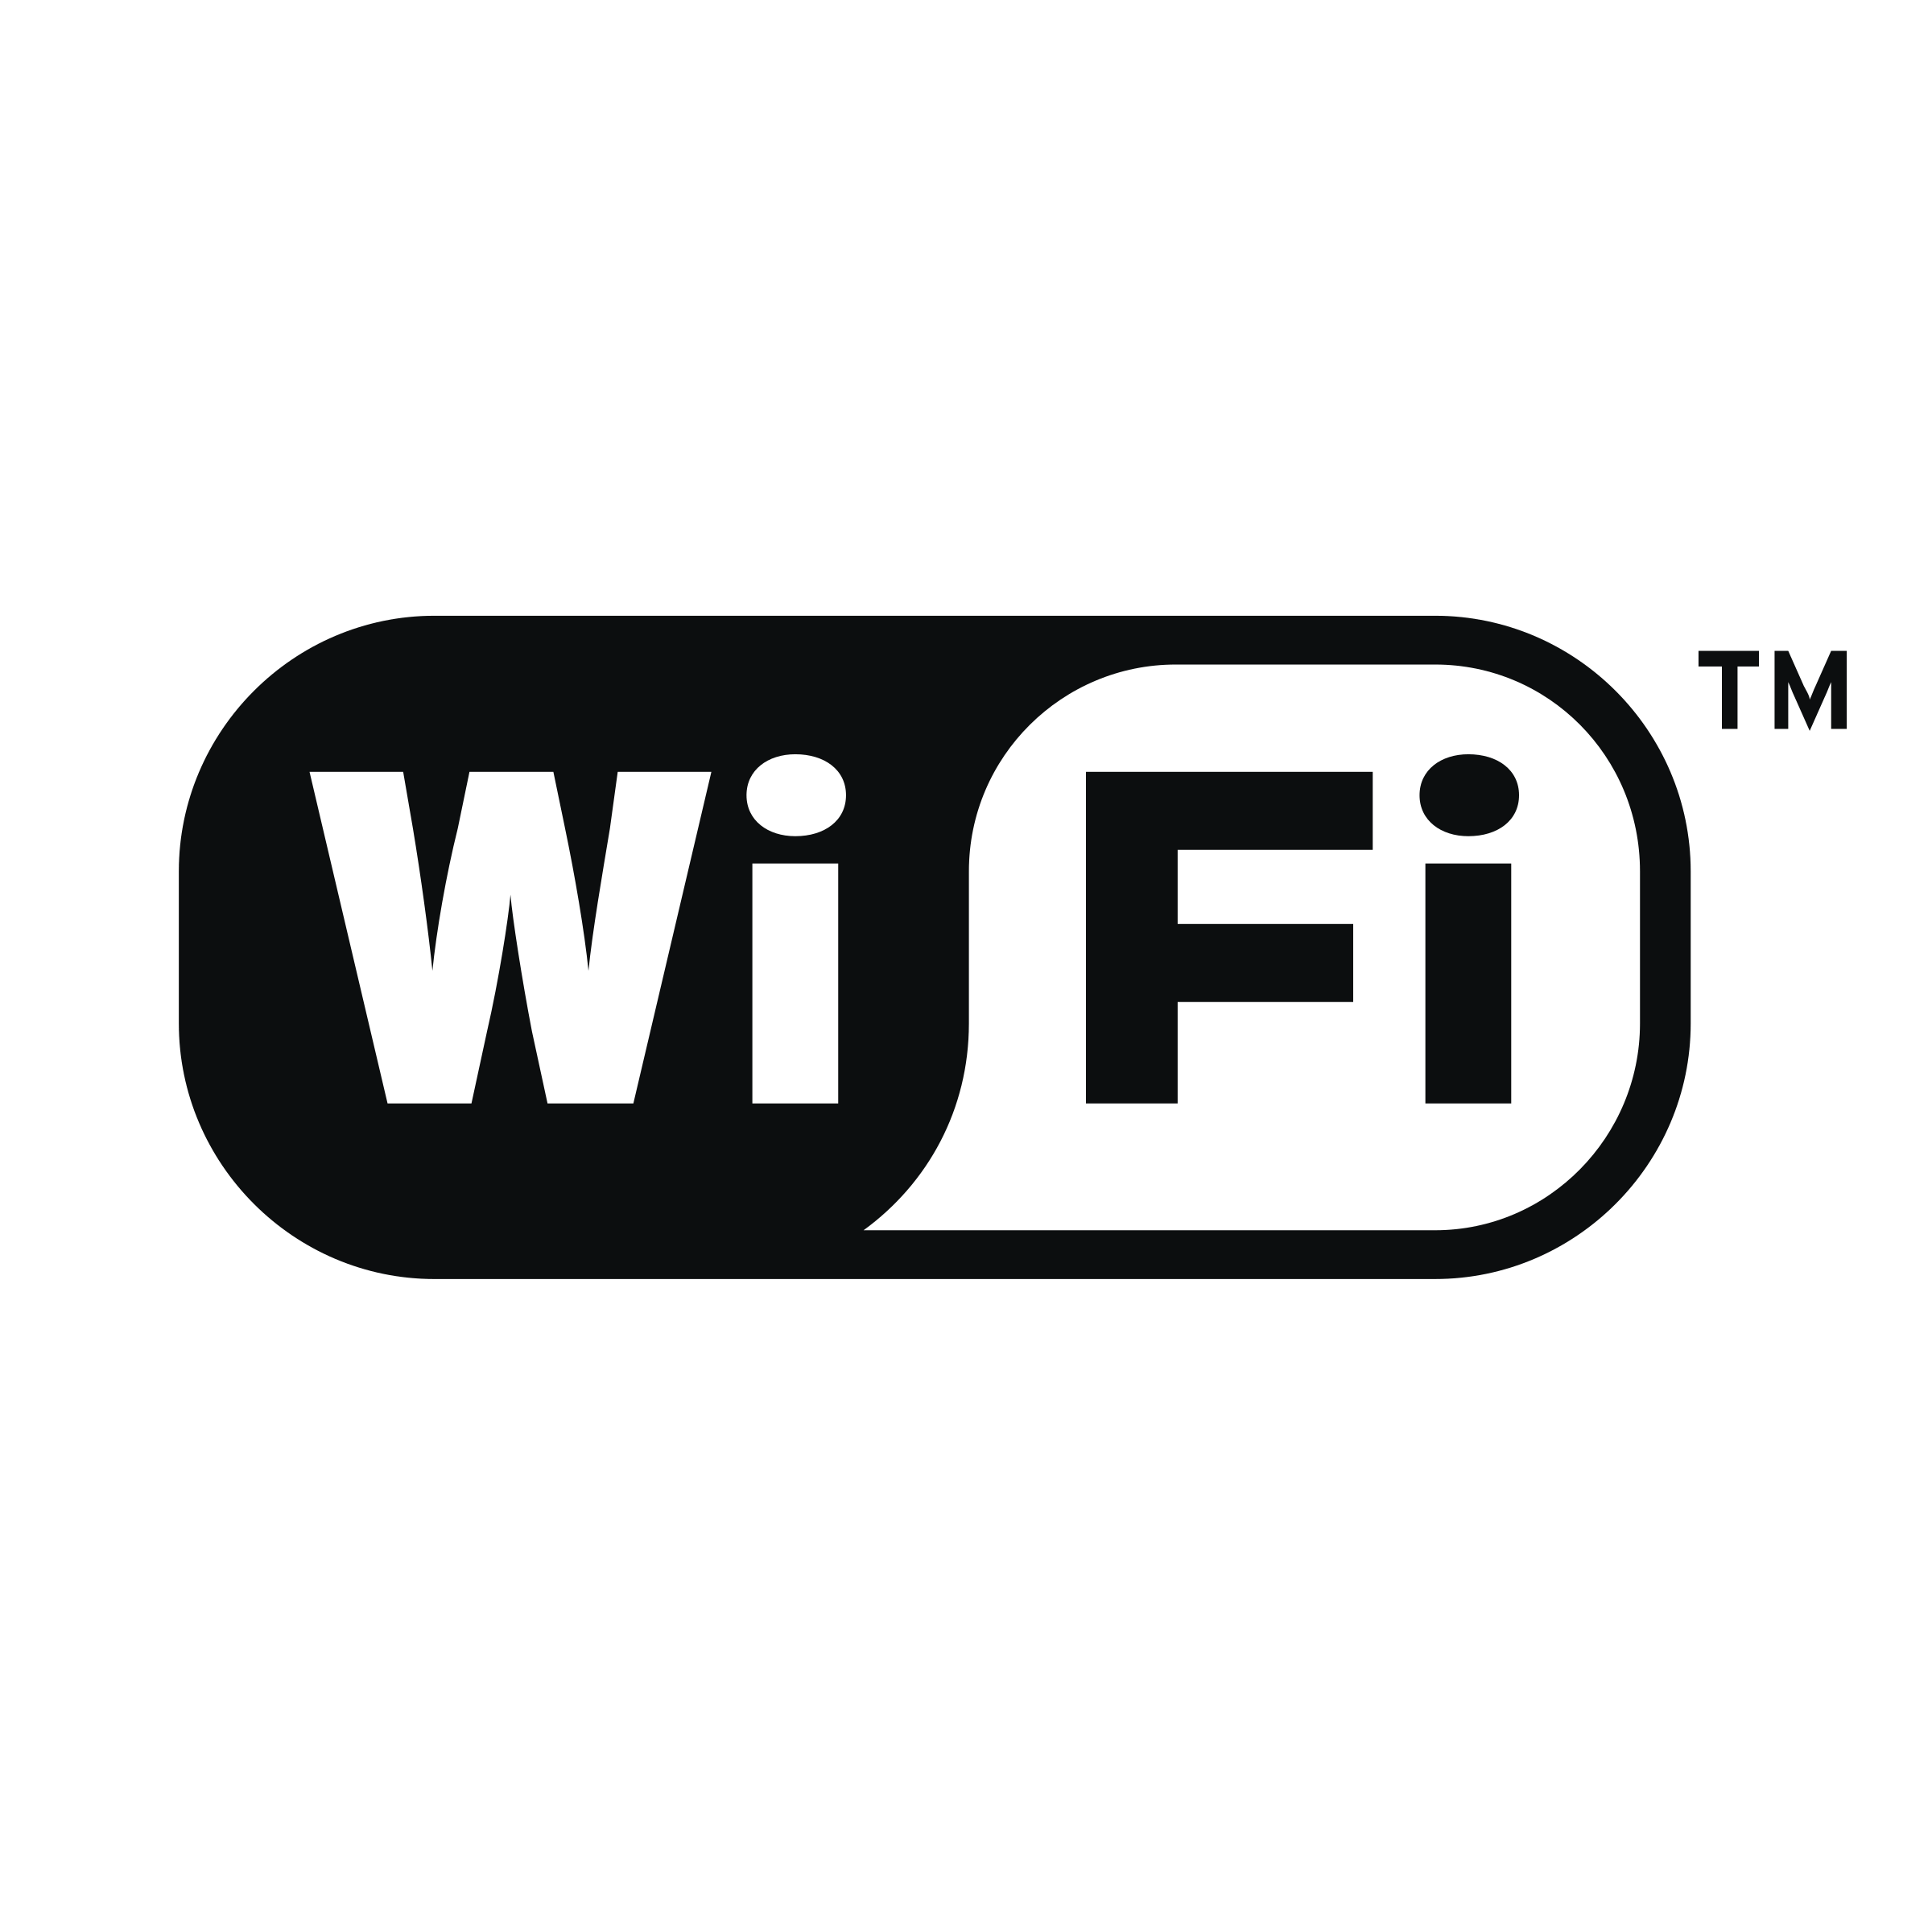 Wifi Logo - Wifi Logo PNG Transparent & SVG Vector - Freebie Supply